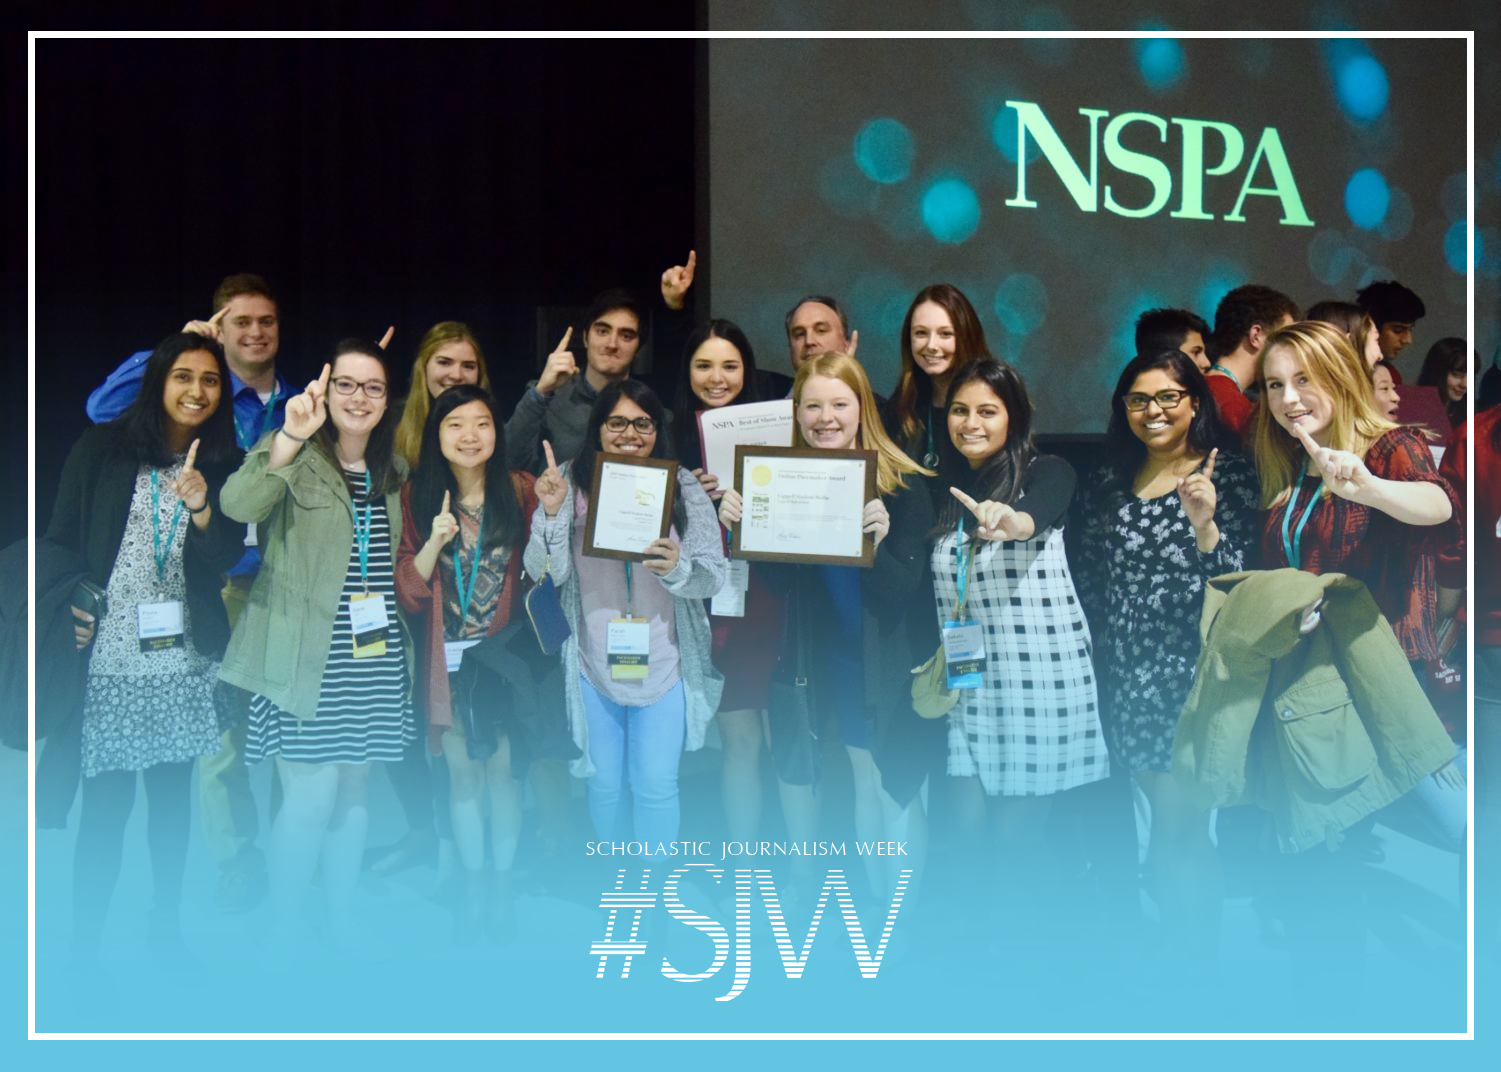 Members of the 2016-17 The Sidekick staff celebrate the first NSPA Online Pacemaker for Coppell Student Media at the Washington State Convention Center in Seattle. For 2019 Scholastic Journalism Week, The Sidekick adviser Chase Wofford appreciates how journalism has allowed him to experience such moments with special people.